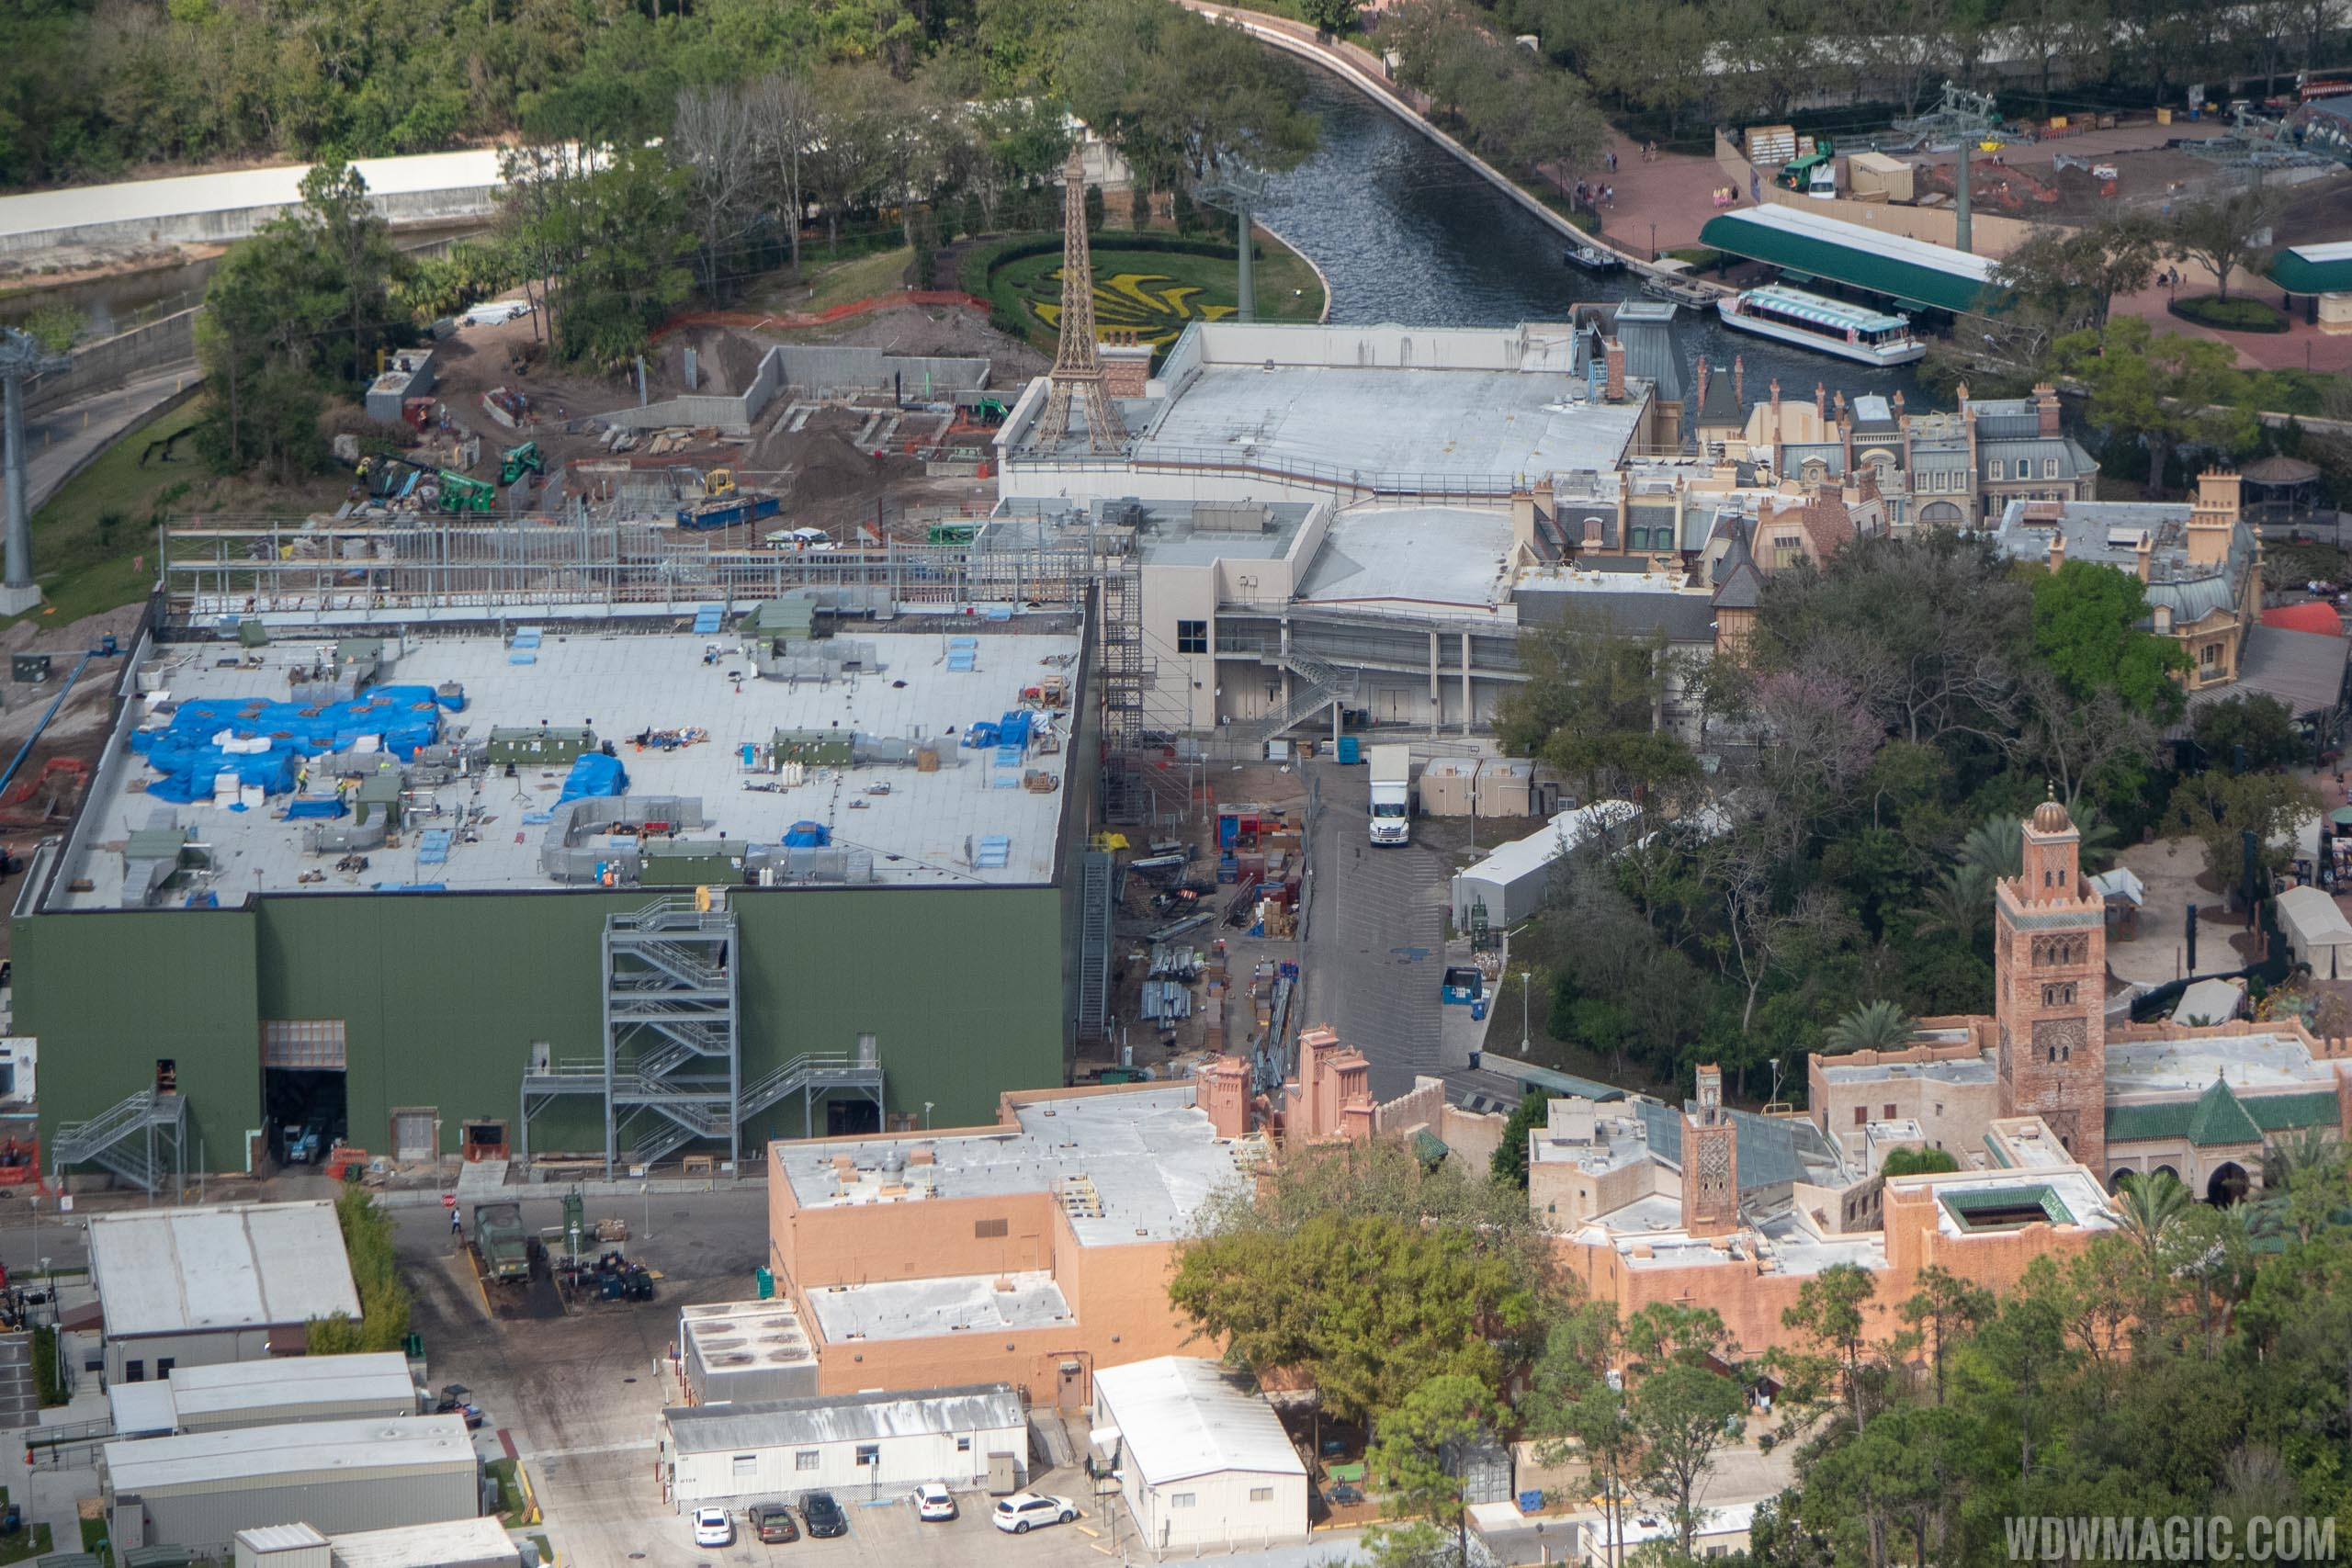 Remy's Ratatouille Adventure construction - February 2019